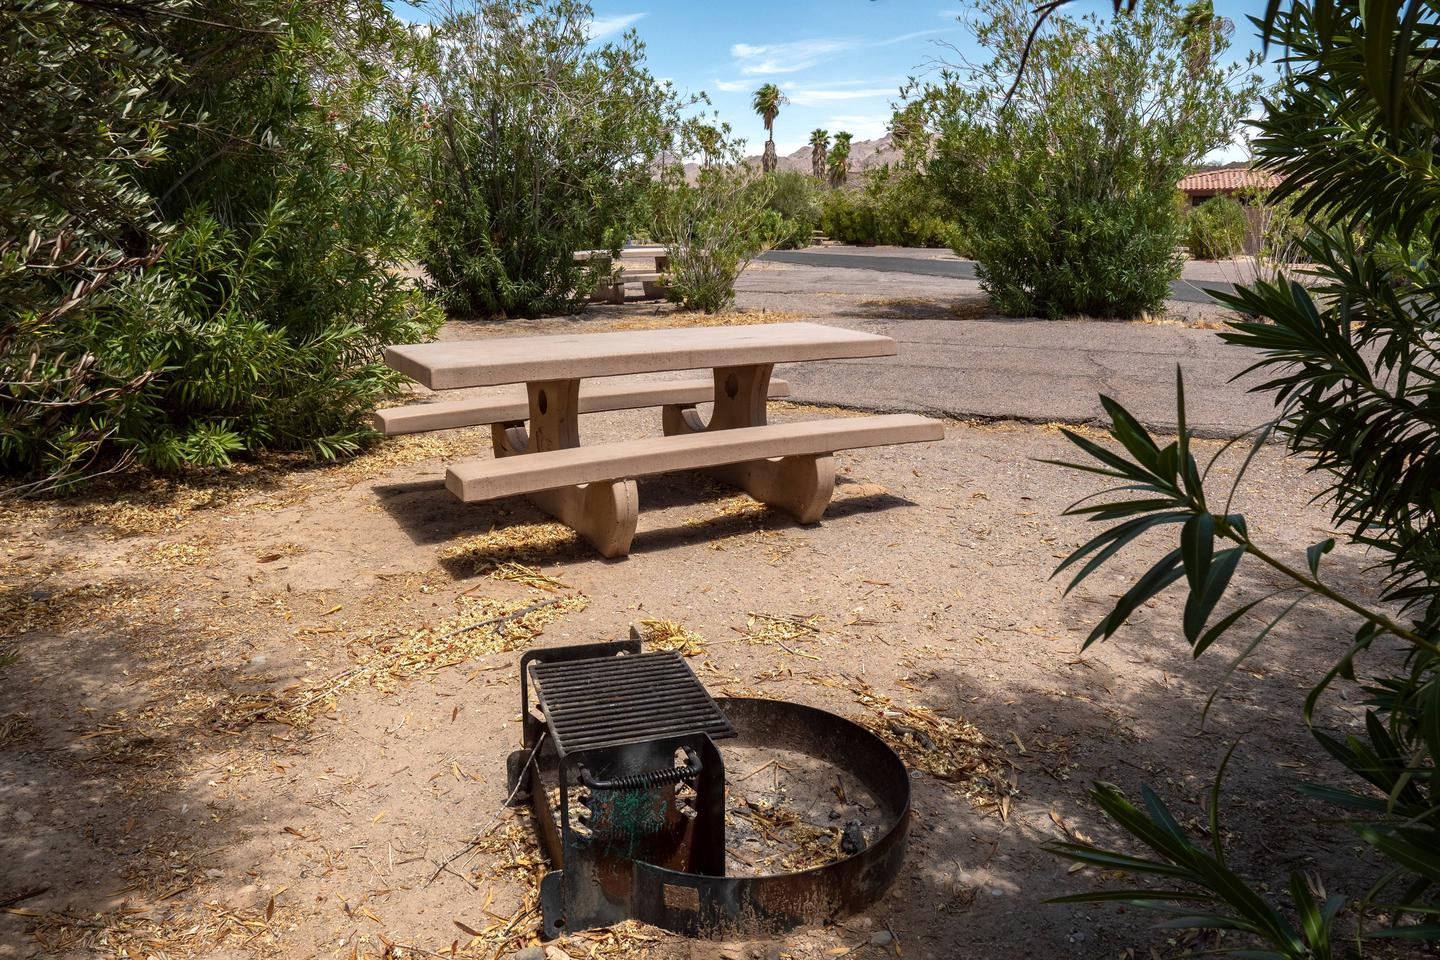 Campsite located in a desert setting2Callville Bay Campground